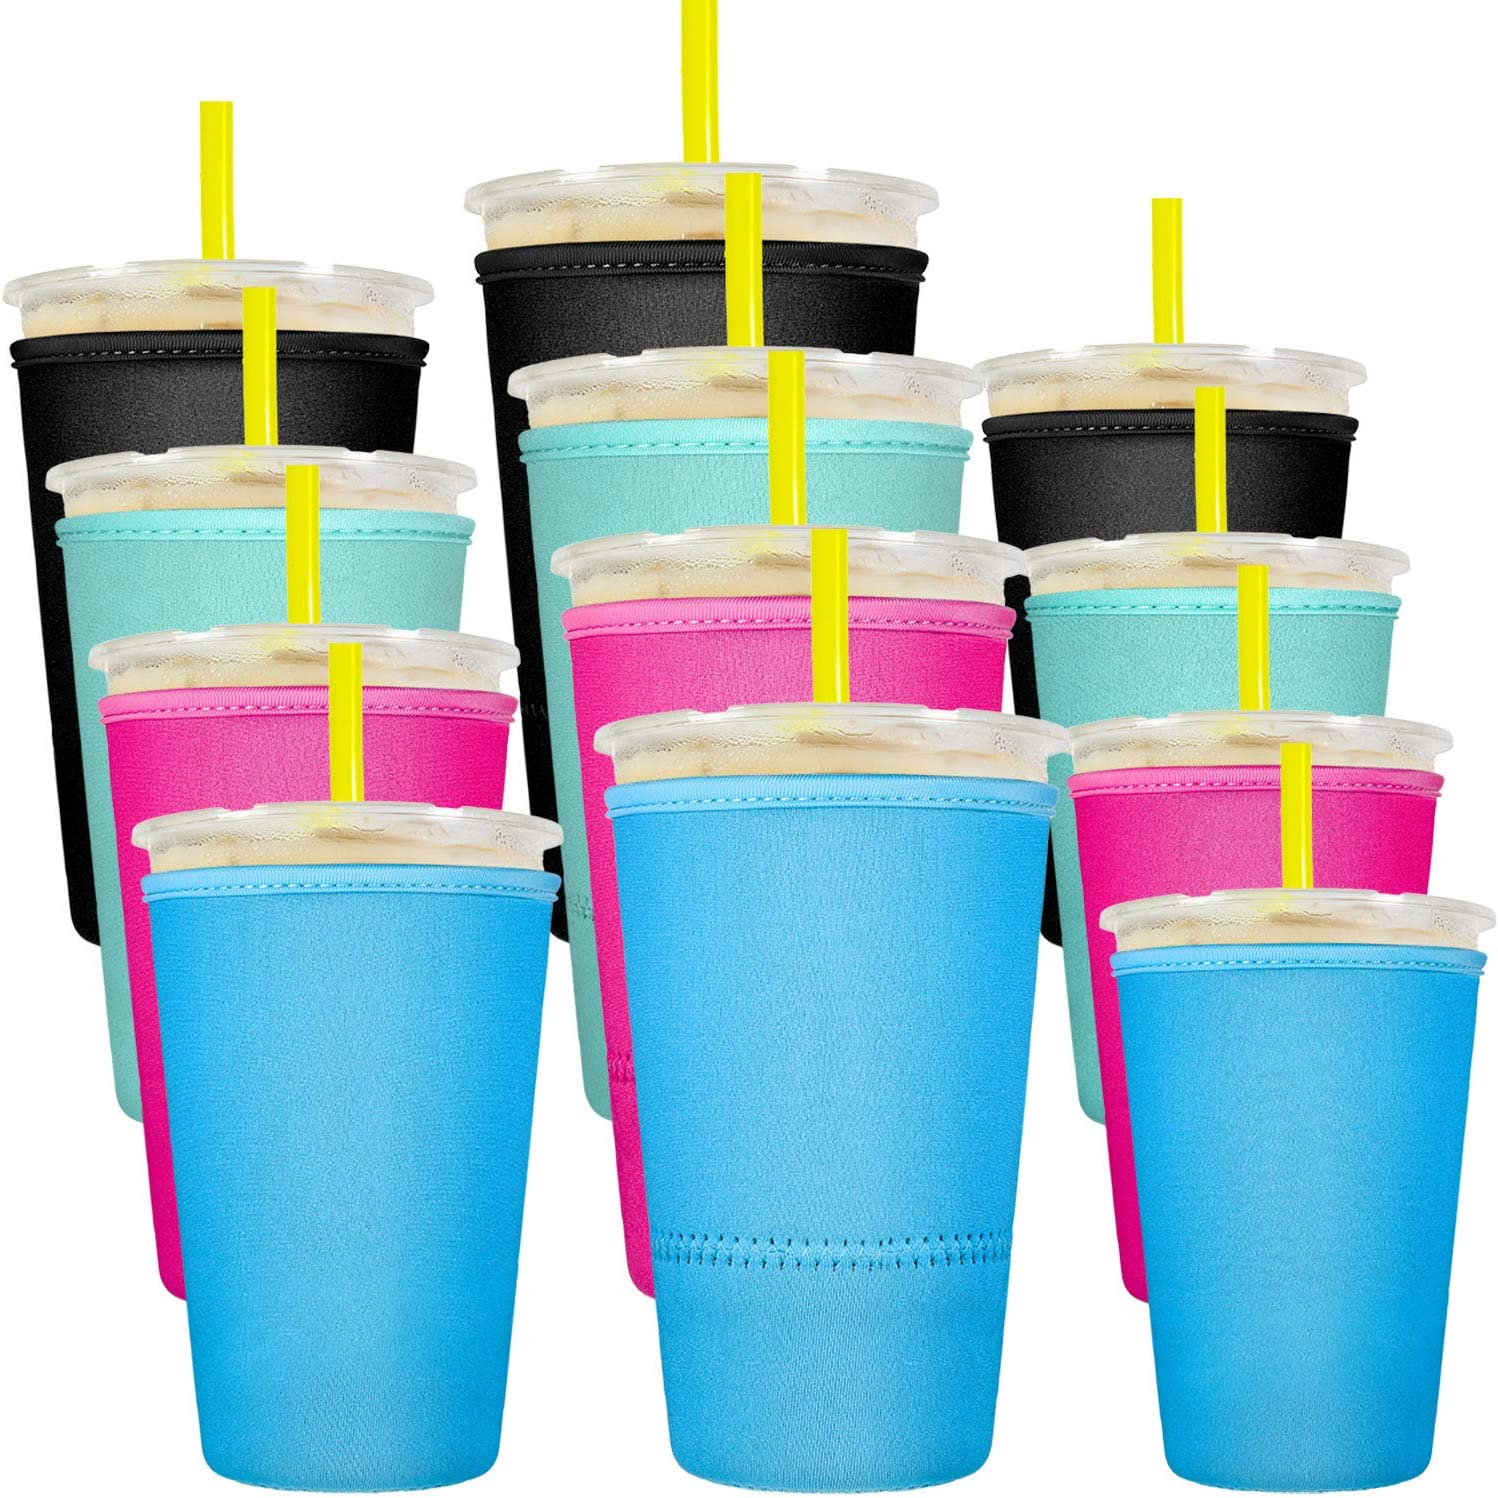 12 Pieces Reusable Iced Coffee Cup Sleeves Insulated Cup Covers Insulator Sleeves Drinks Holders for 10 to 32 Ounce Cold Hot Drink Beverages Cup Bottles, 3 Sizes, Black, Light Blue, Pink and Green